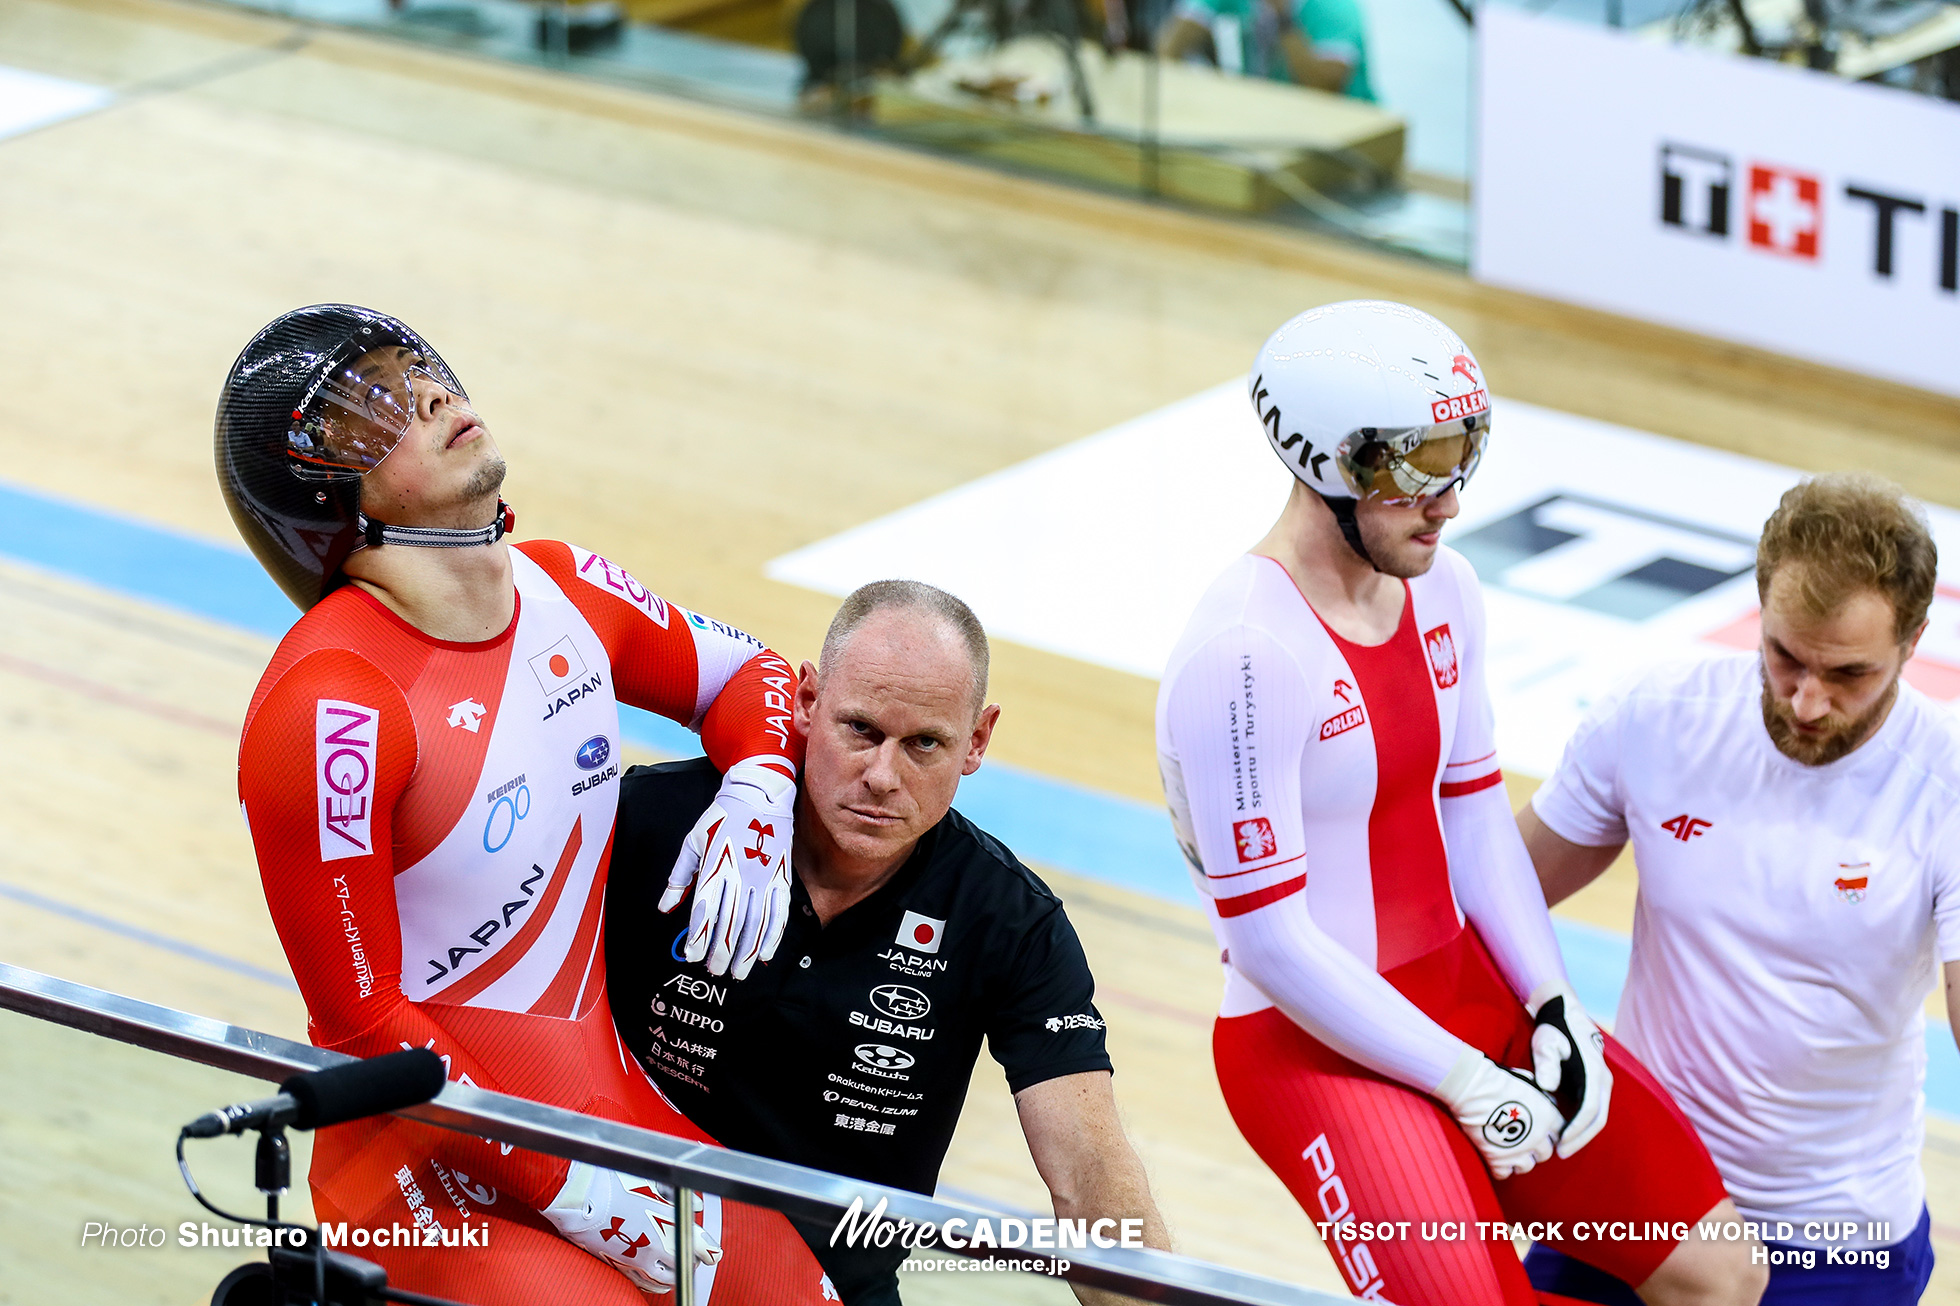 Final / Men's Sprint / TISSOT UCI TRACK CYCLING WORLD CUP III, Hong Kong, 深谷知広 Mateusz Rudyk マテウス・ルディク